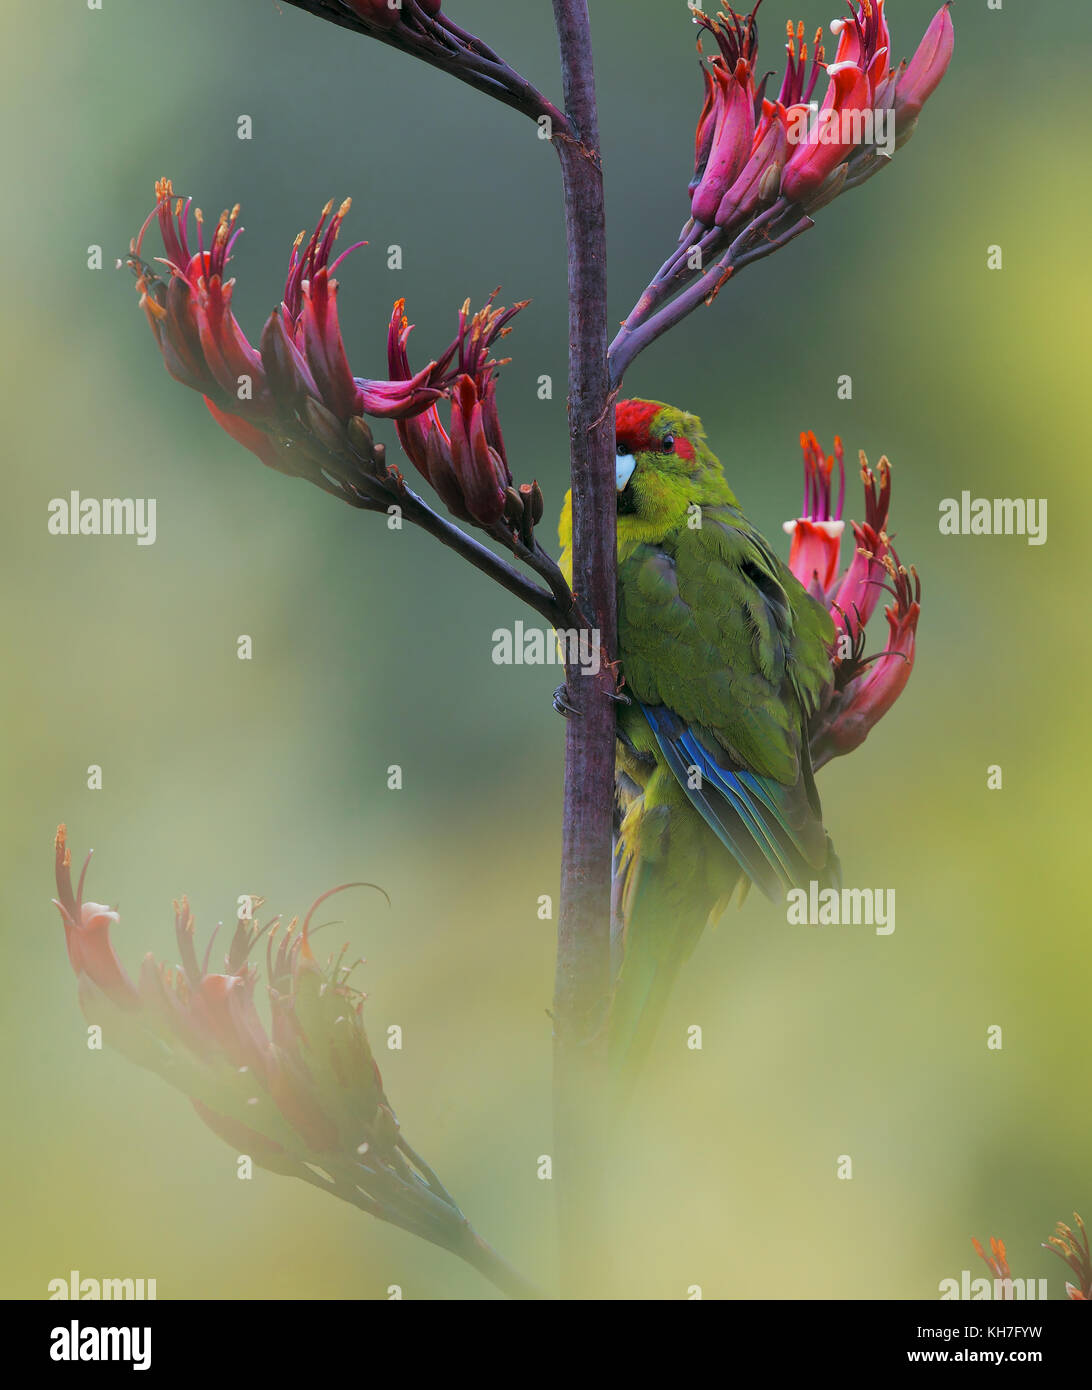 Red-fronted Parakeet on Phormium - Stock Image